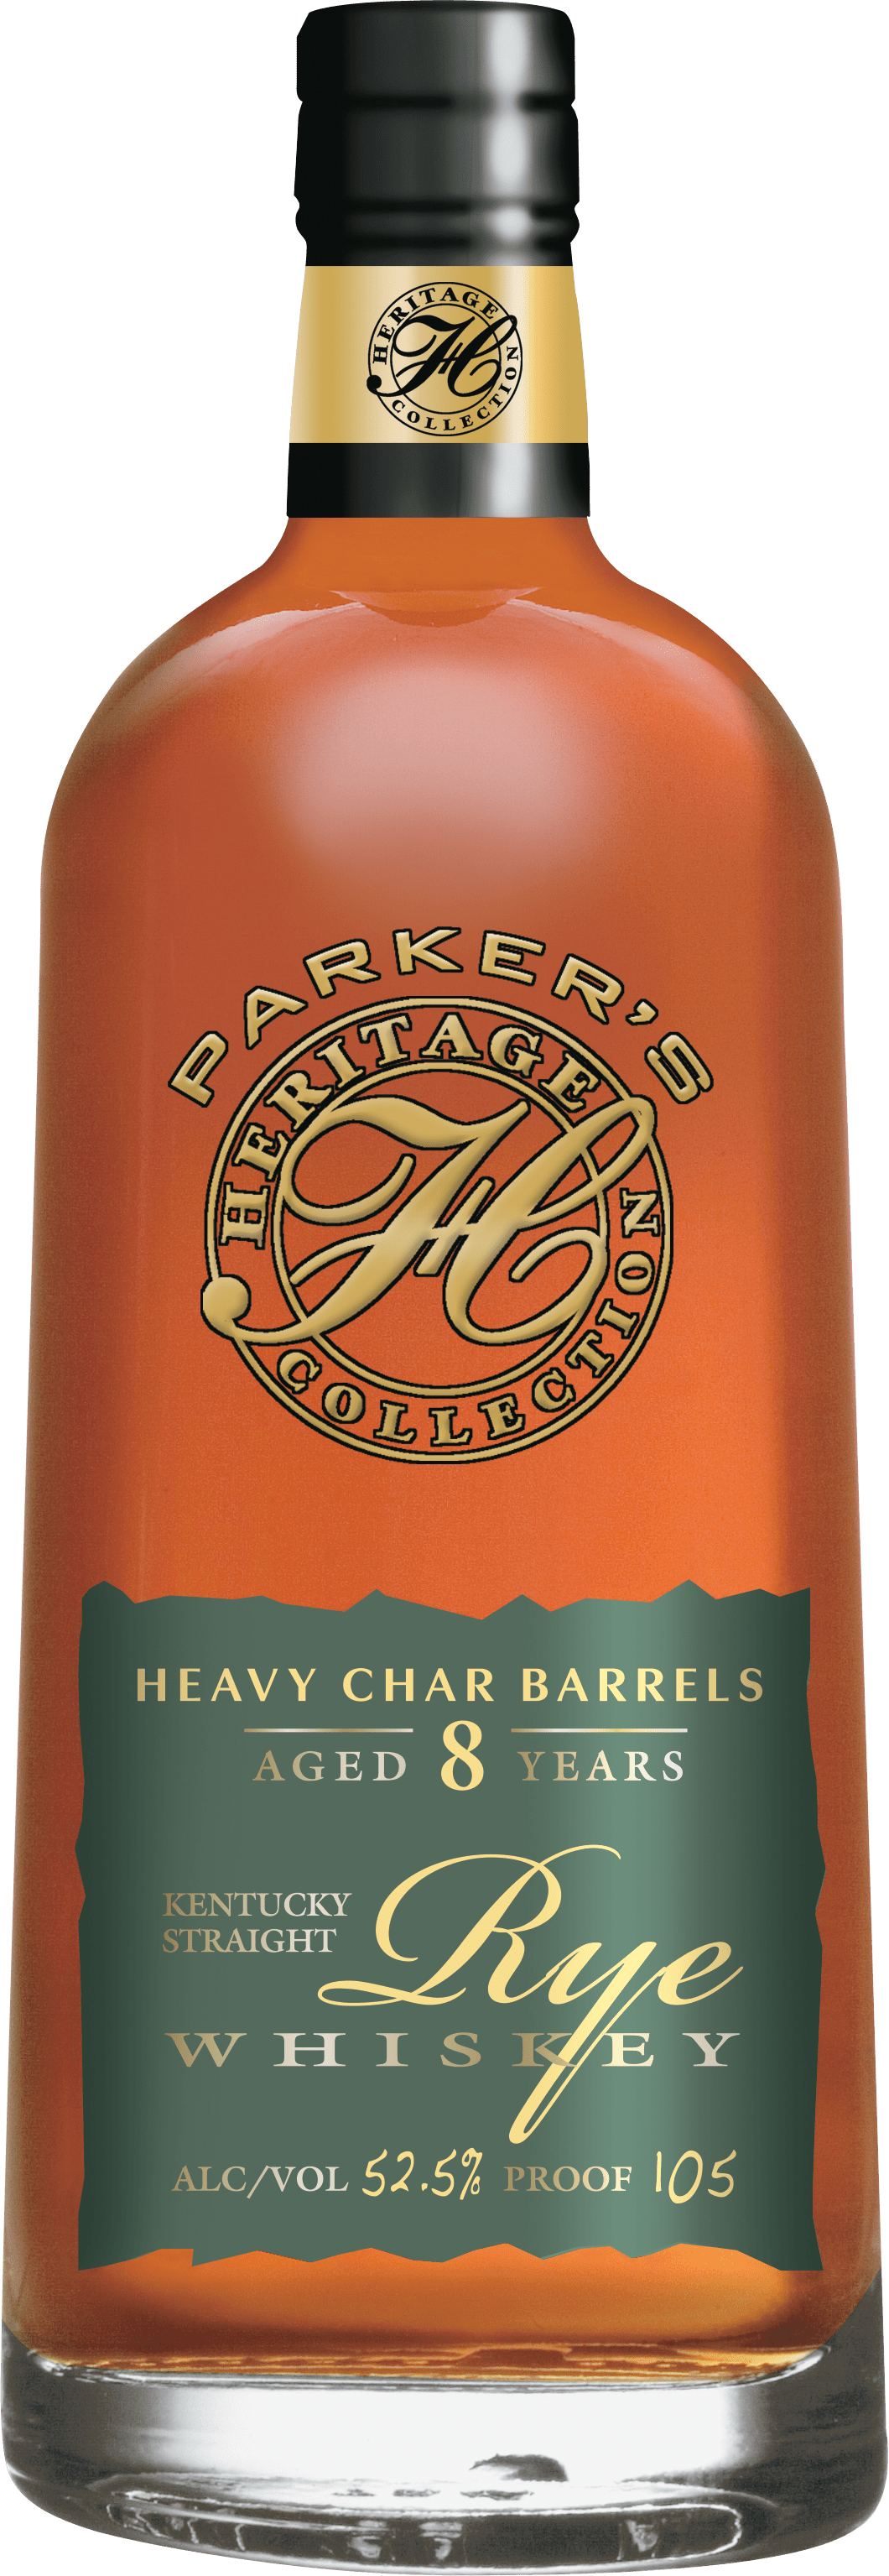 PHC 13thEdition Rye - Heaven Hill Distillery Announces Release of 2019 Parker's Heritage Collection Limited Edition Bottling